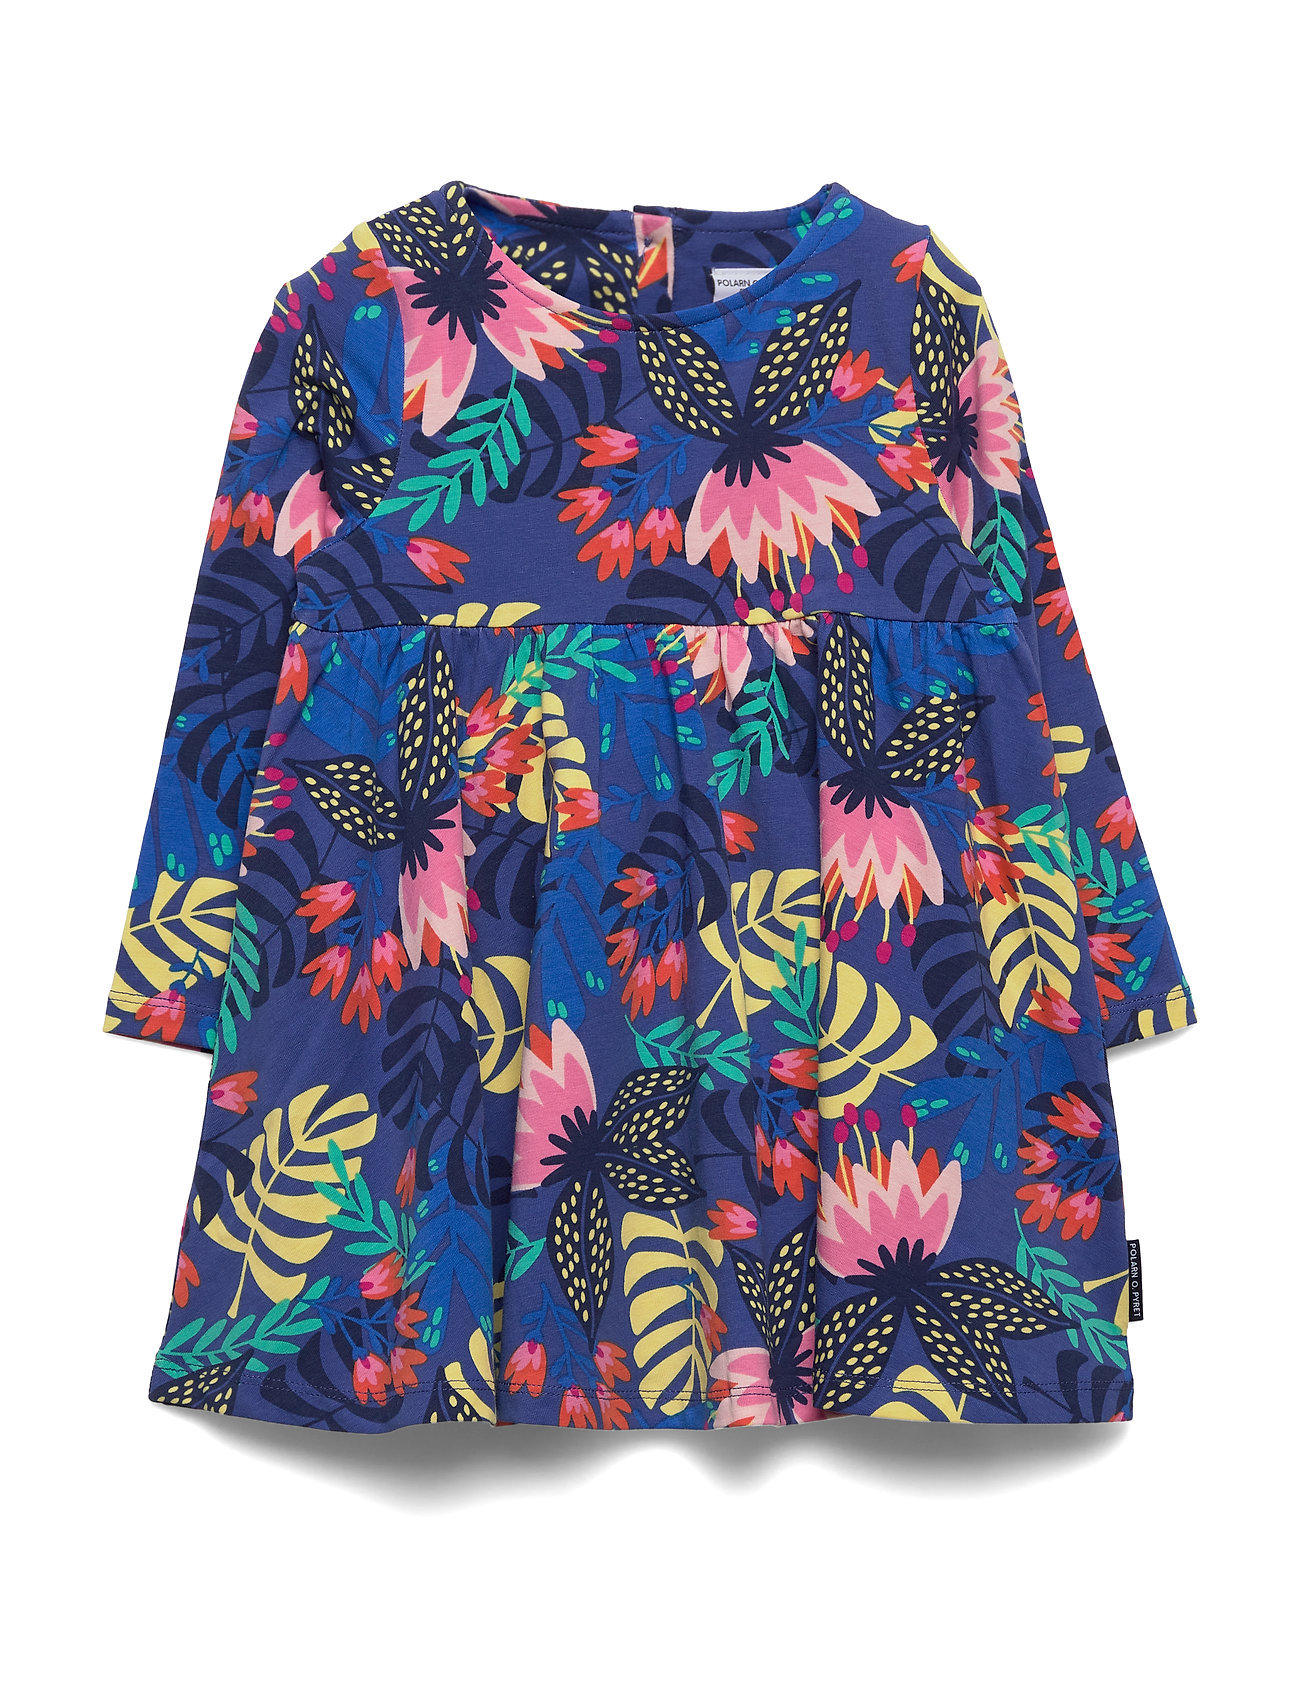 Polarn O. Pyret Dress Jersey AOP Preschool - DEEP ULTRAMARINE